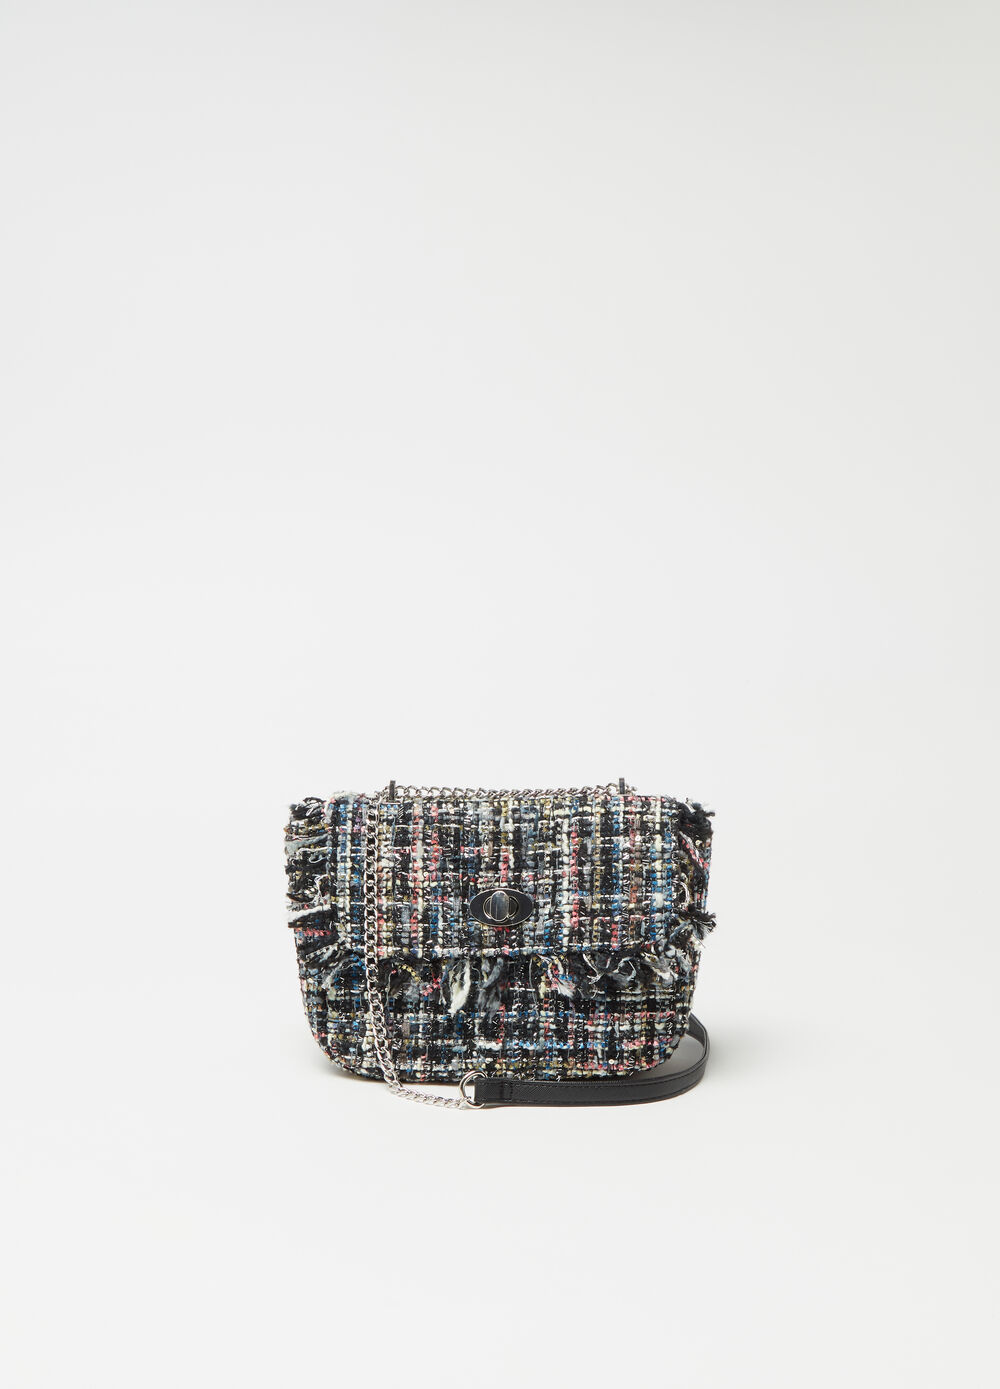 Bolso bandolera multicolor de tweed